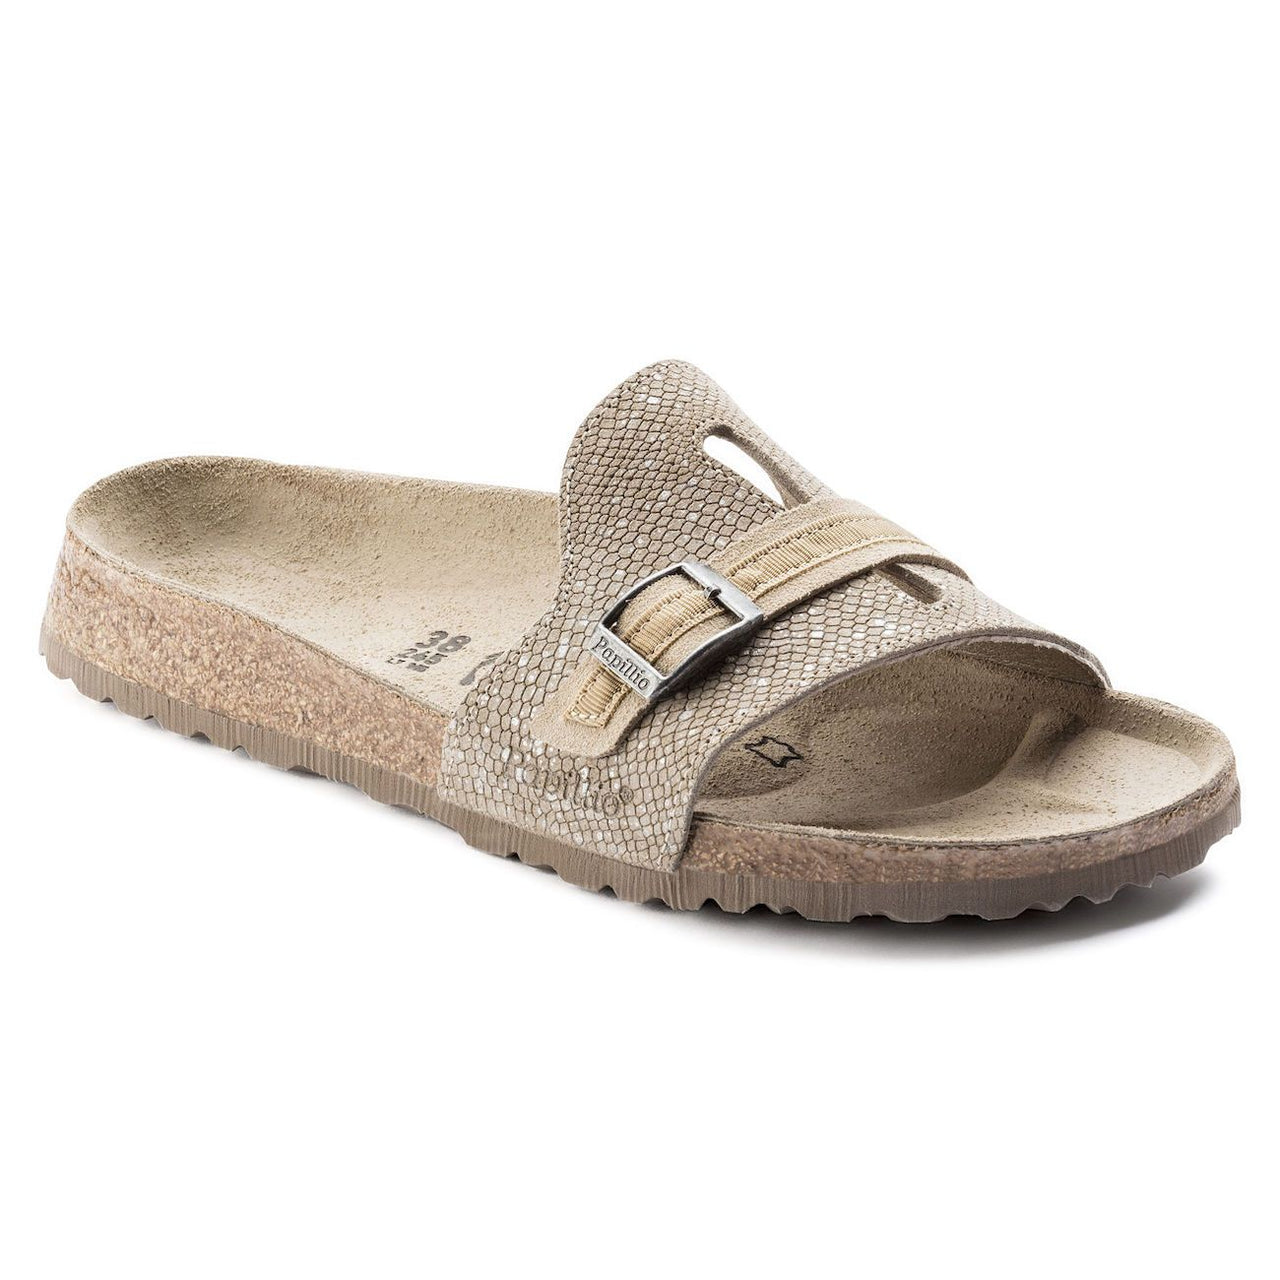 Papillio, Carmen, Embossed Leather, Narrow Fit, Silver Splashes Mud at Birkenstock Hahndorf